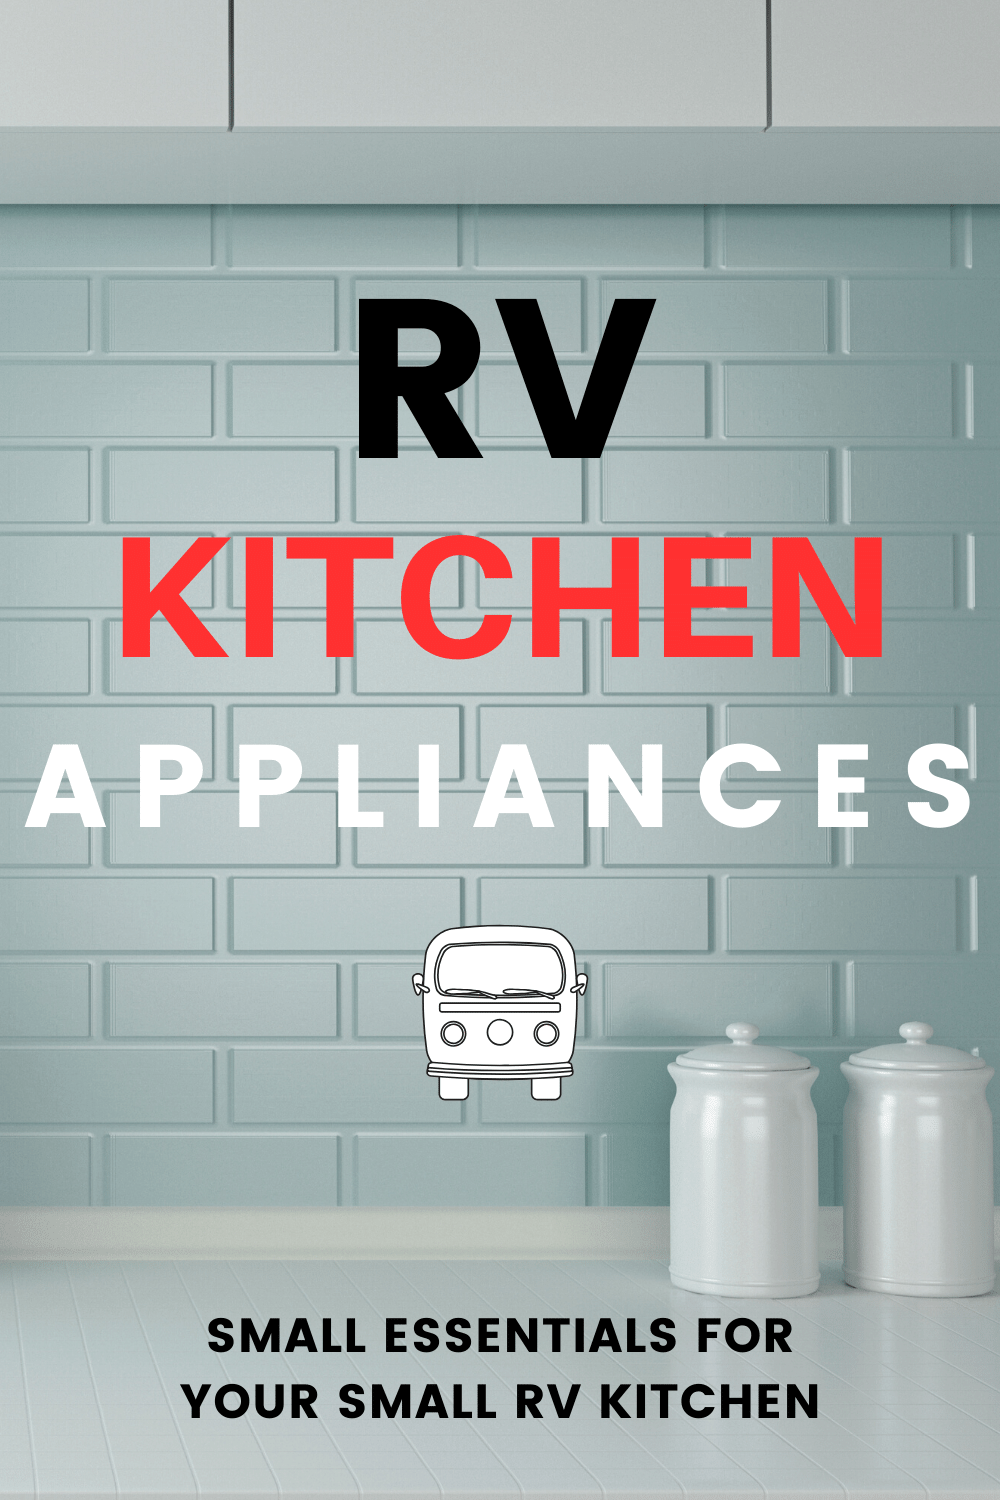 Small RV Appliances for your RV Kitchen